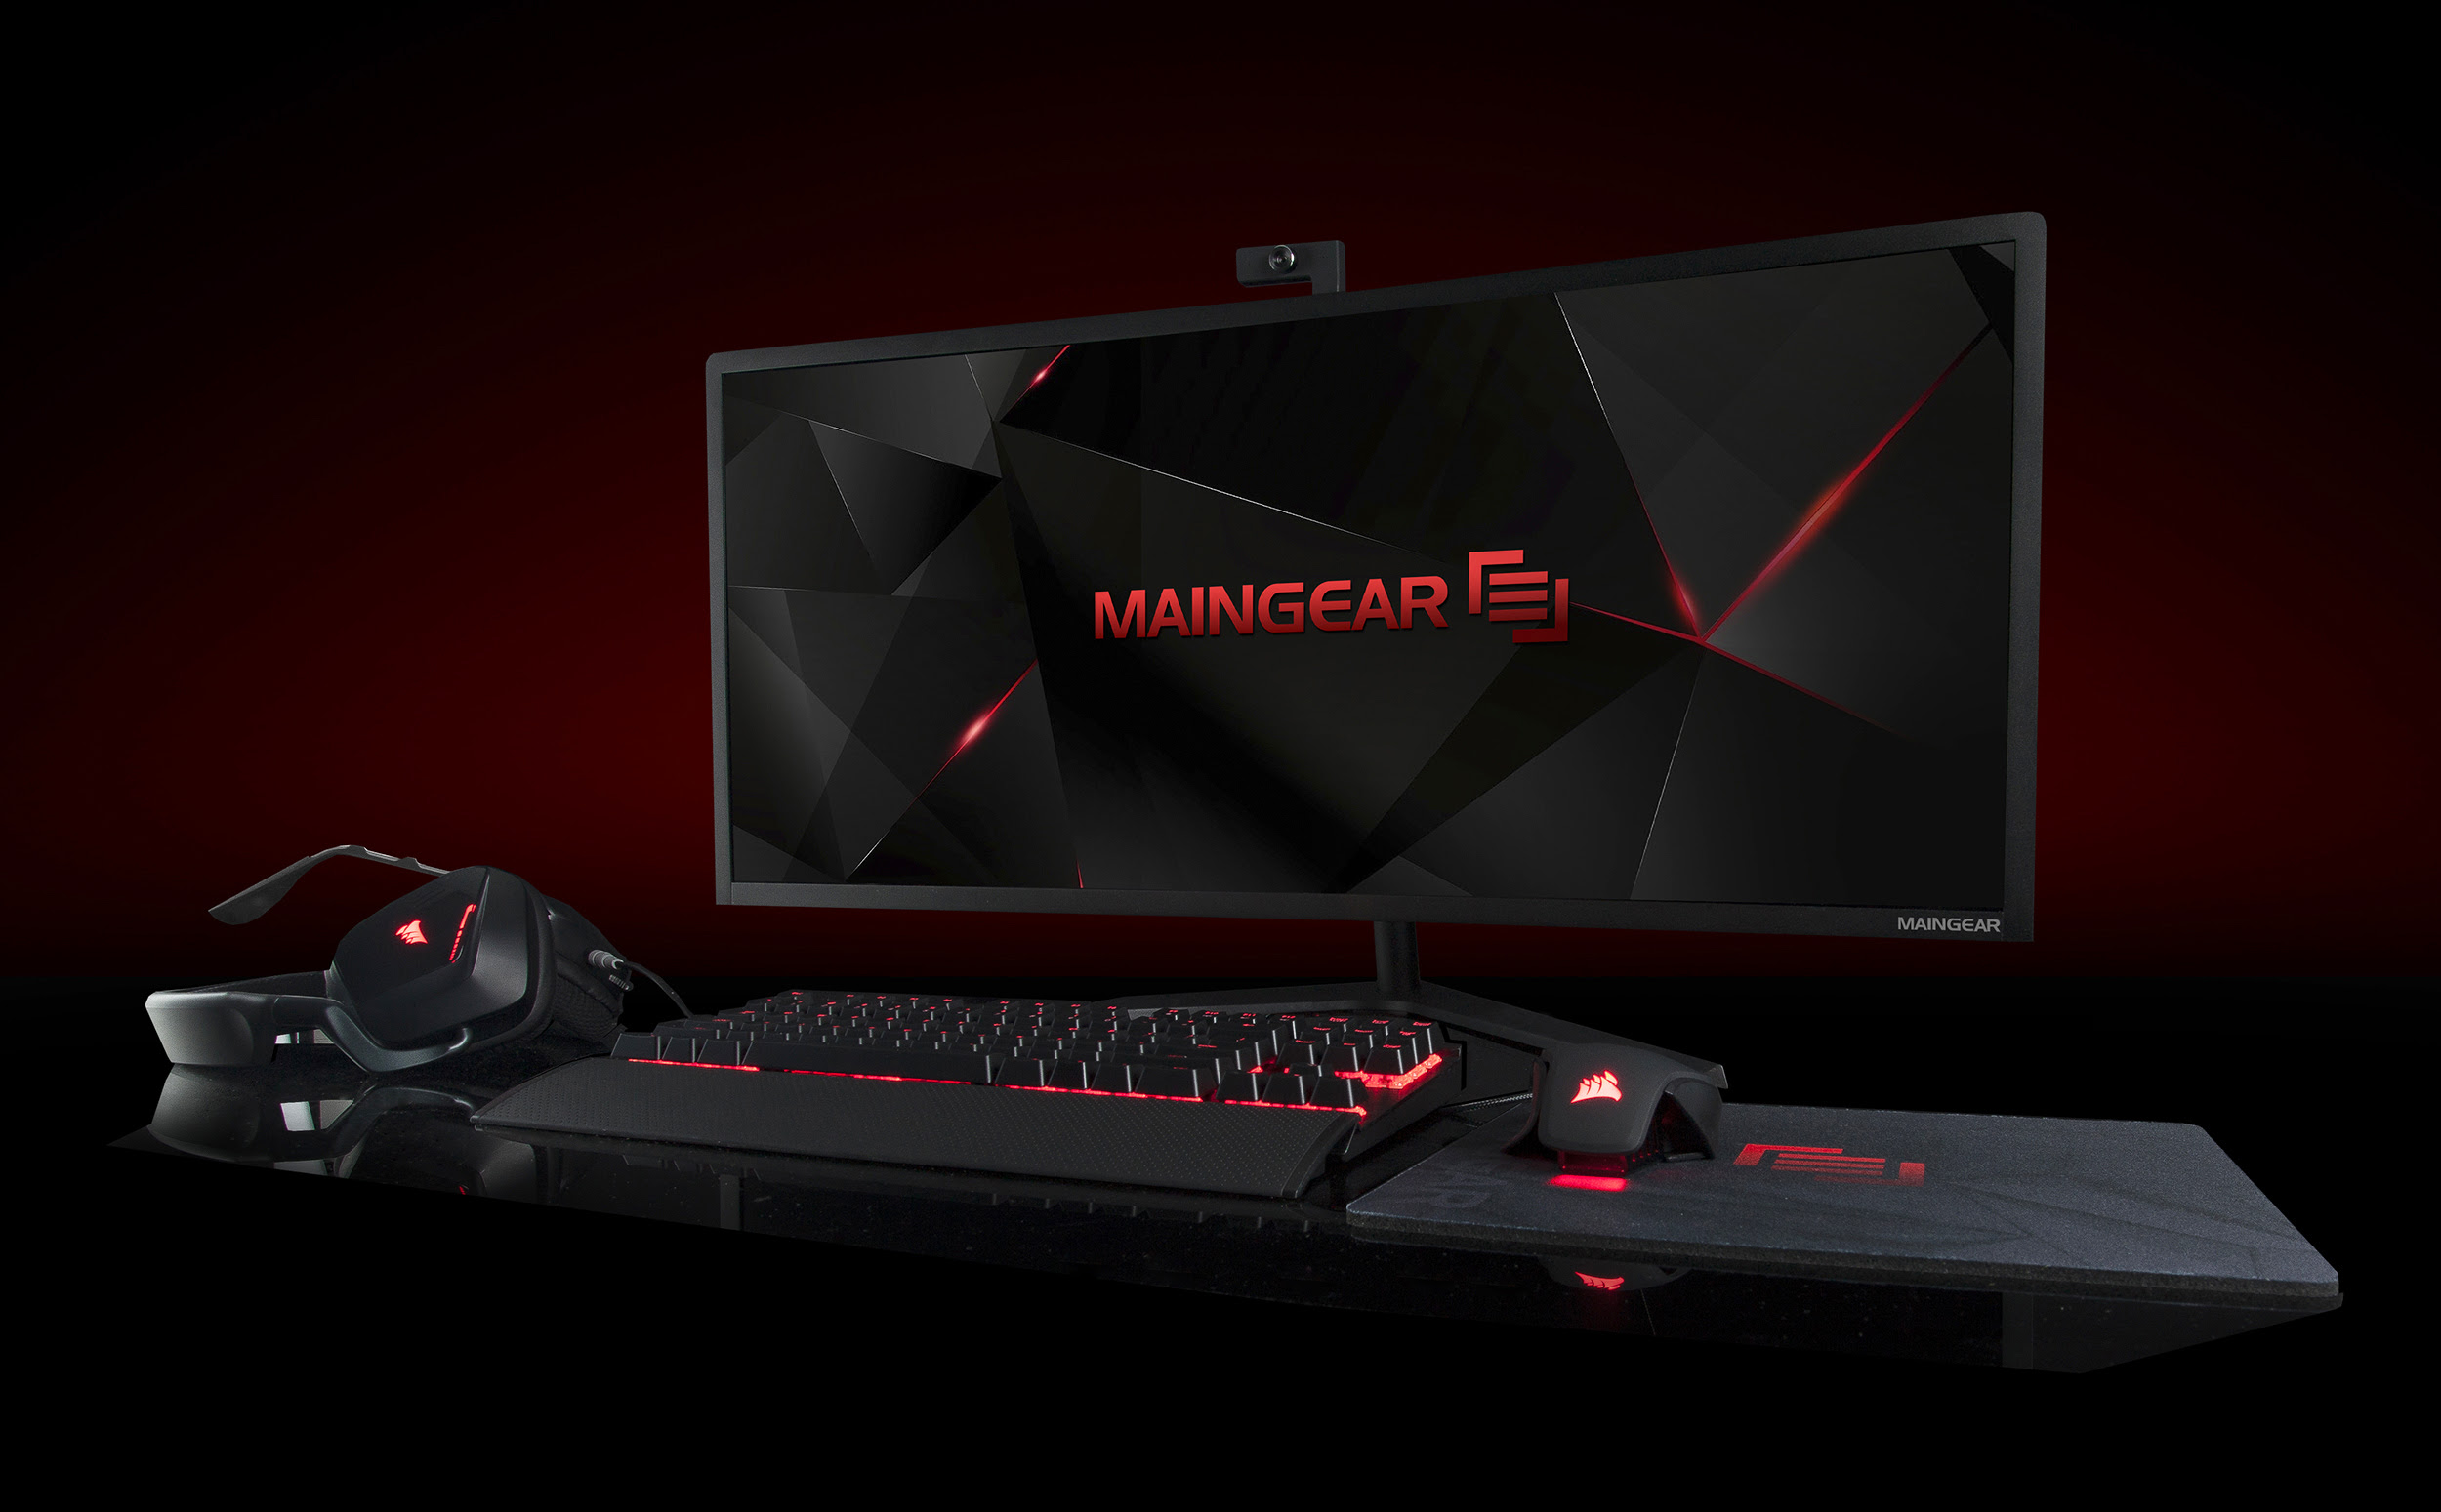 Dell Alienware Cool Wallpaper Car Game A Gaming All In One Maingear Is Looking To Create A Genre